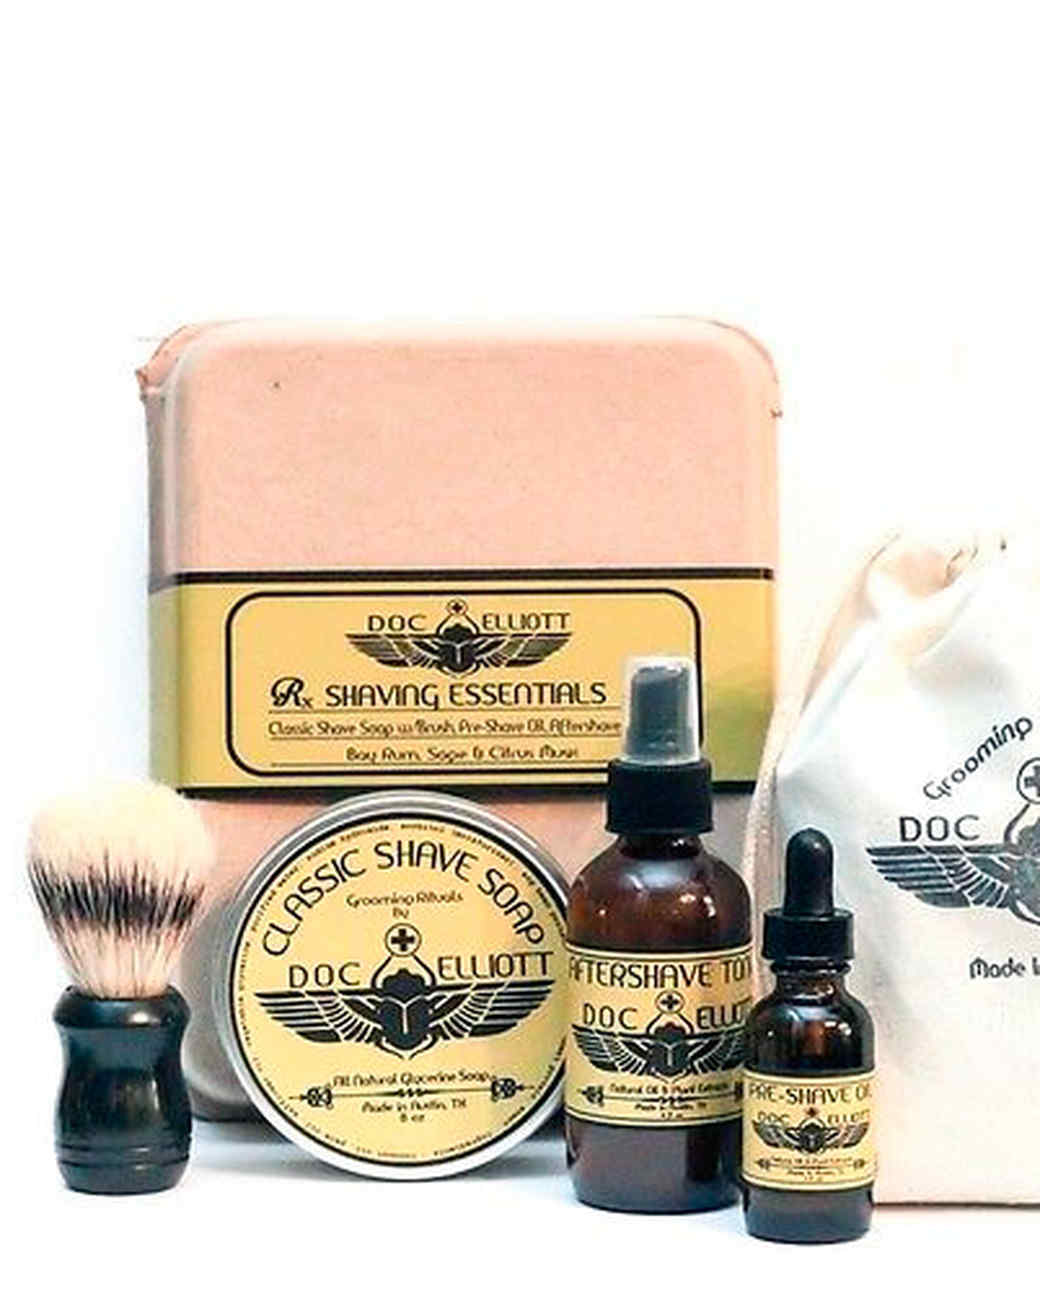 doc-elliot-shaving-gift-set-0915.jpg